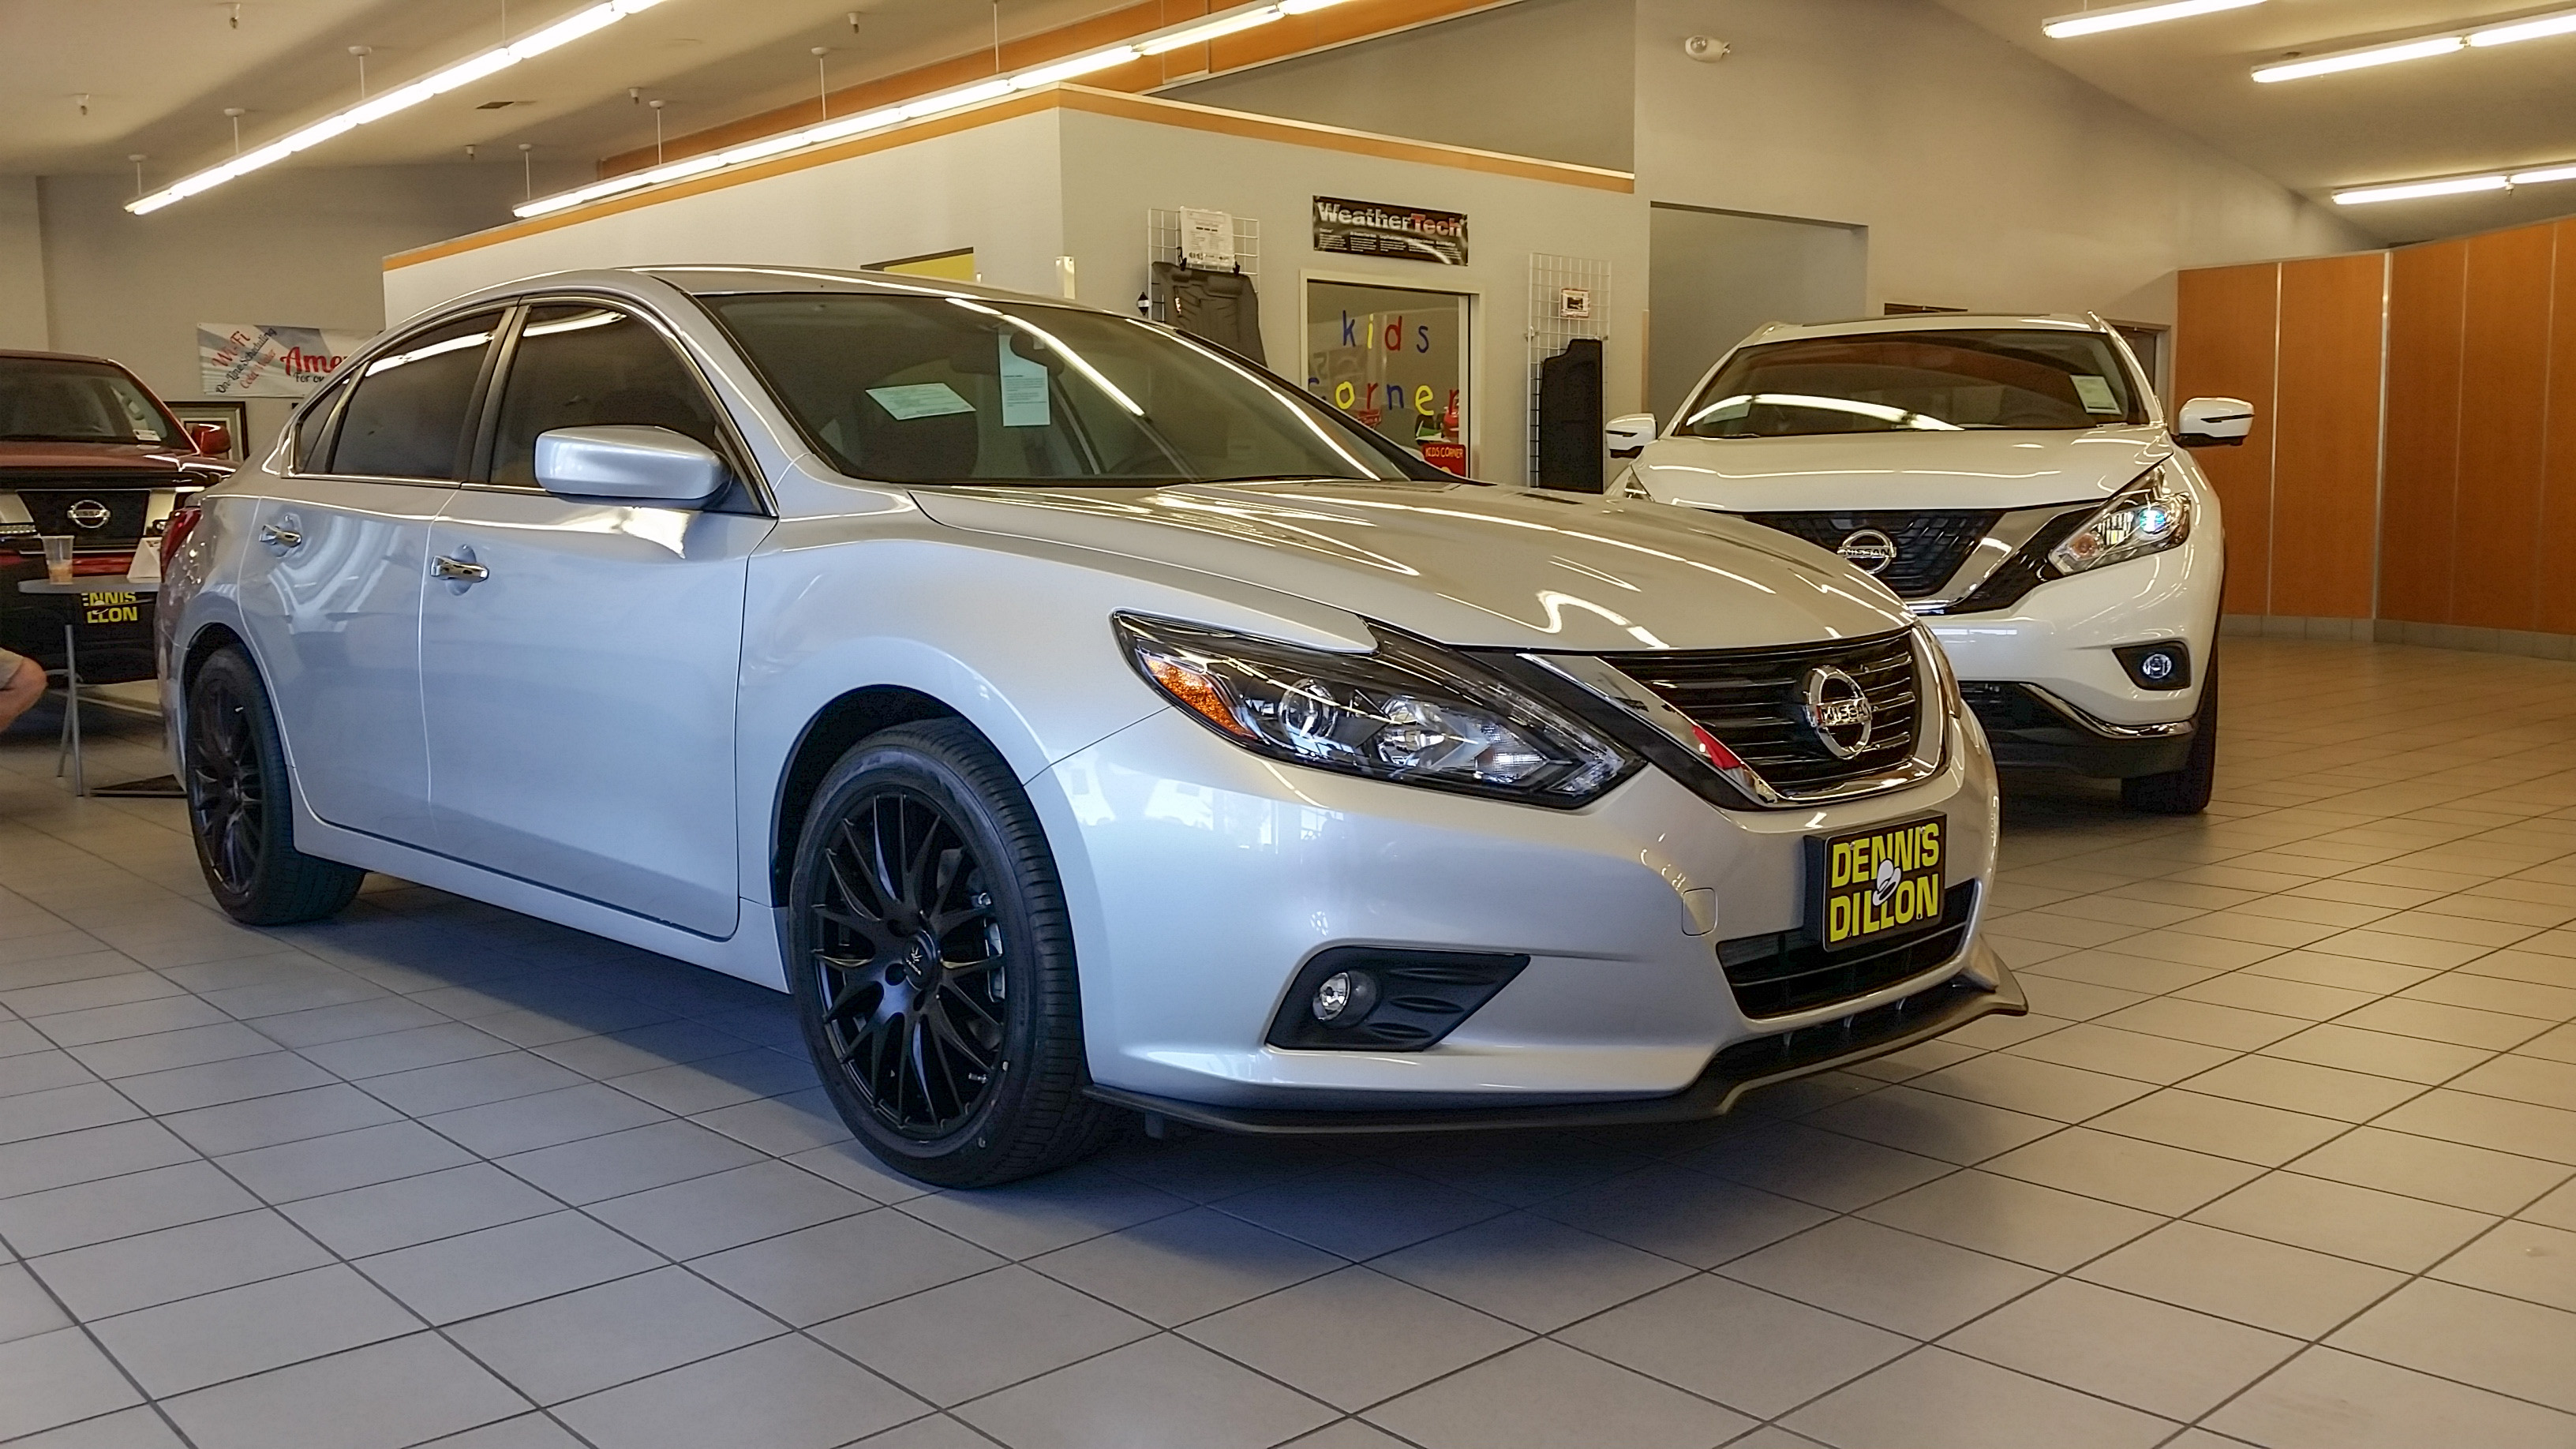 Dennis Dillon Jeep >> Dennis Dillon Nissan's Modified 2016 Nissan Altima 3.5 SR: Boise Beauty | STILLEN Garage